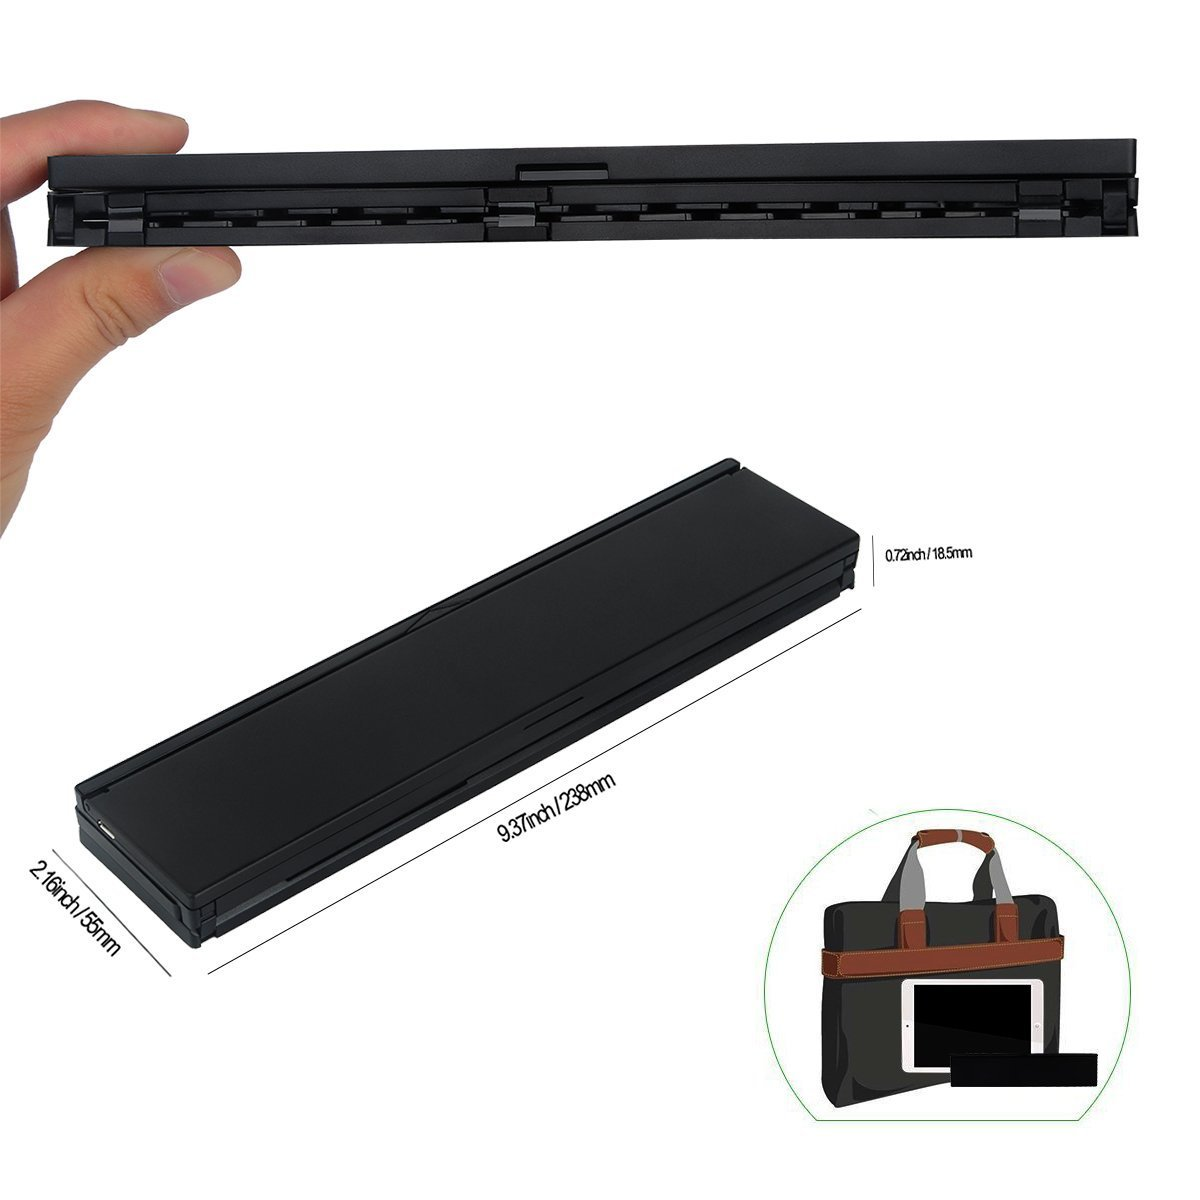 LEANINGTECH Portable Foldable Bluetooth Keyboard Aluminum Metal Collapsible Keypad with Kickstand Holder Phone Holder for iPhone, iPad, Samsung, Android, Windows Device-Black by LEANINGTECH (Image #3)